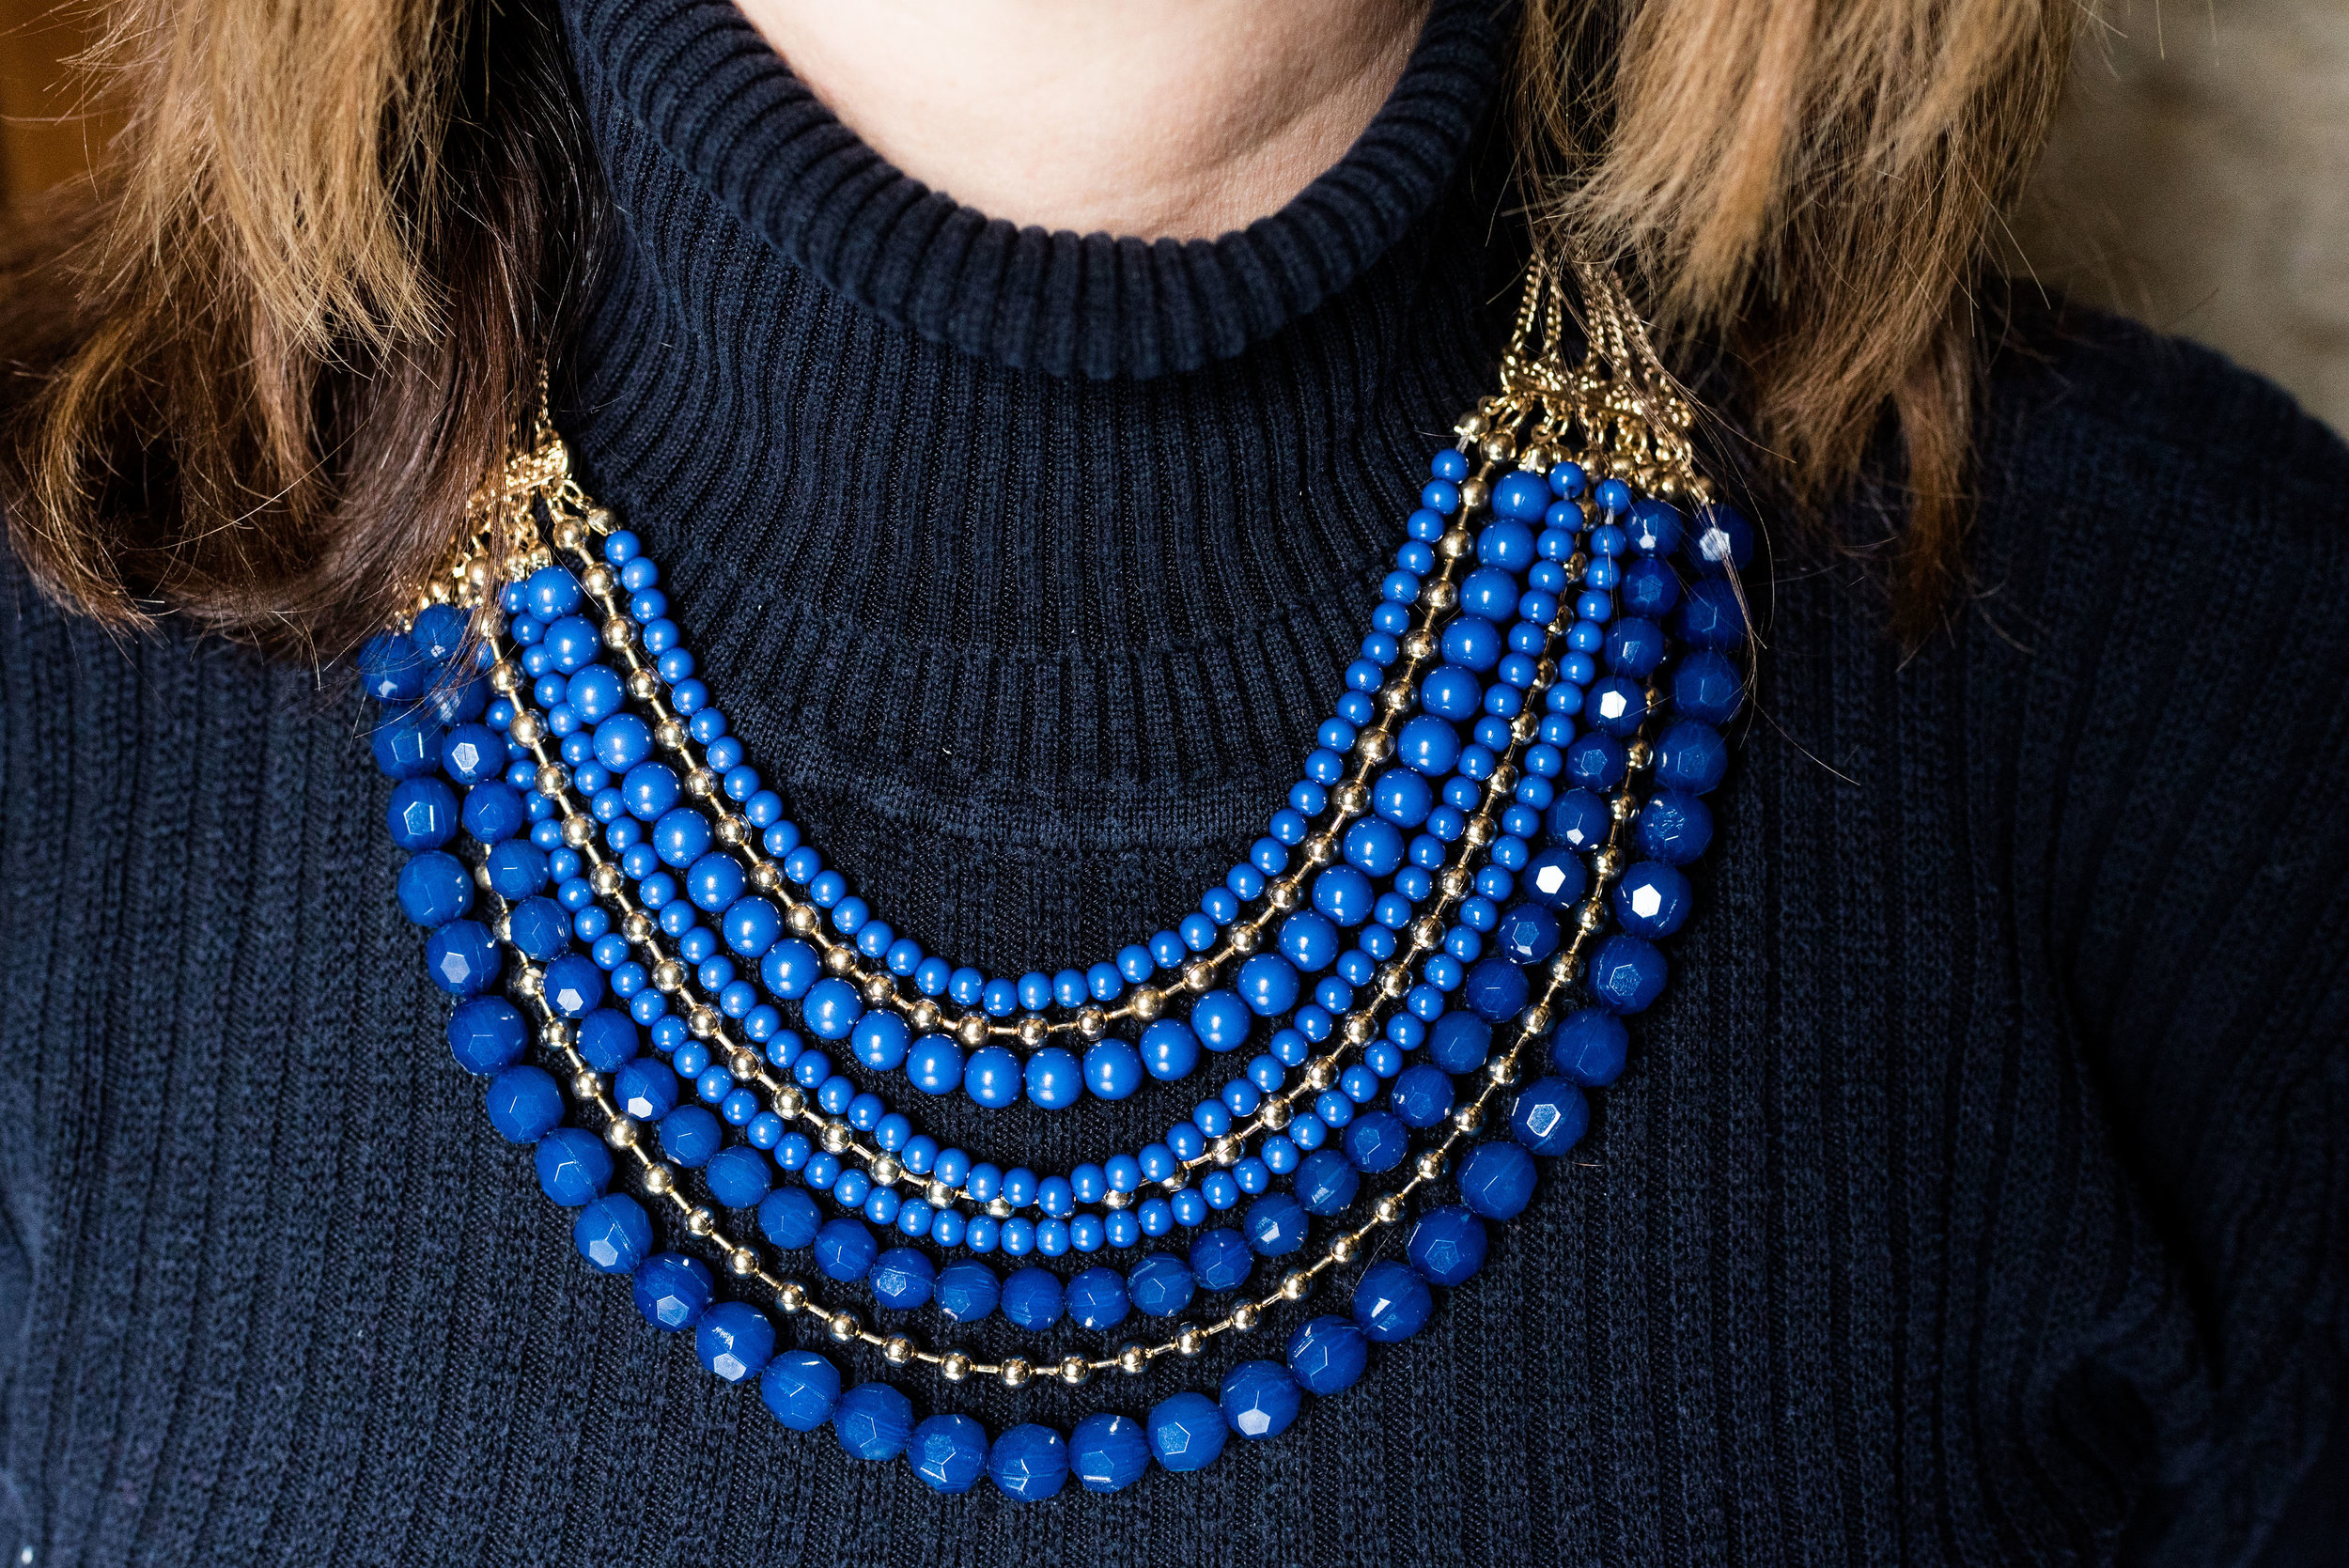 awesome accessory - short statement necklace with beads and metal